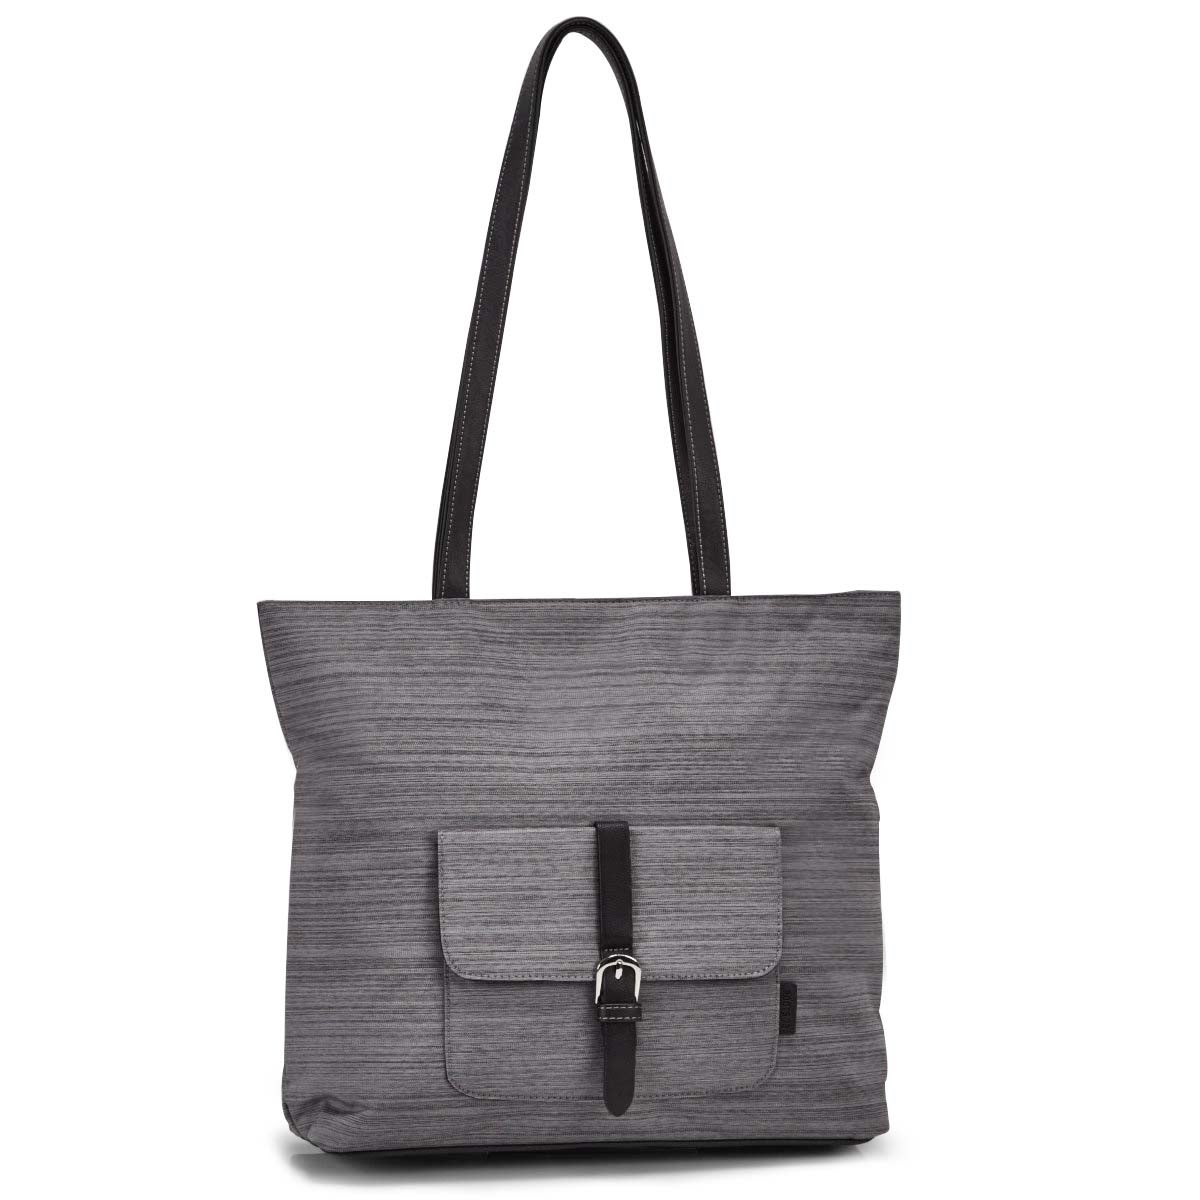 Lds Roots73 grey large tote bag